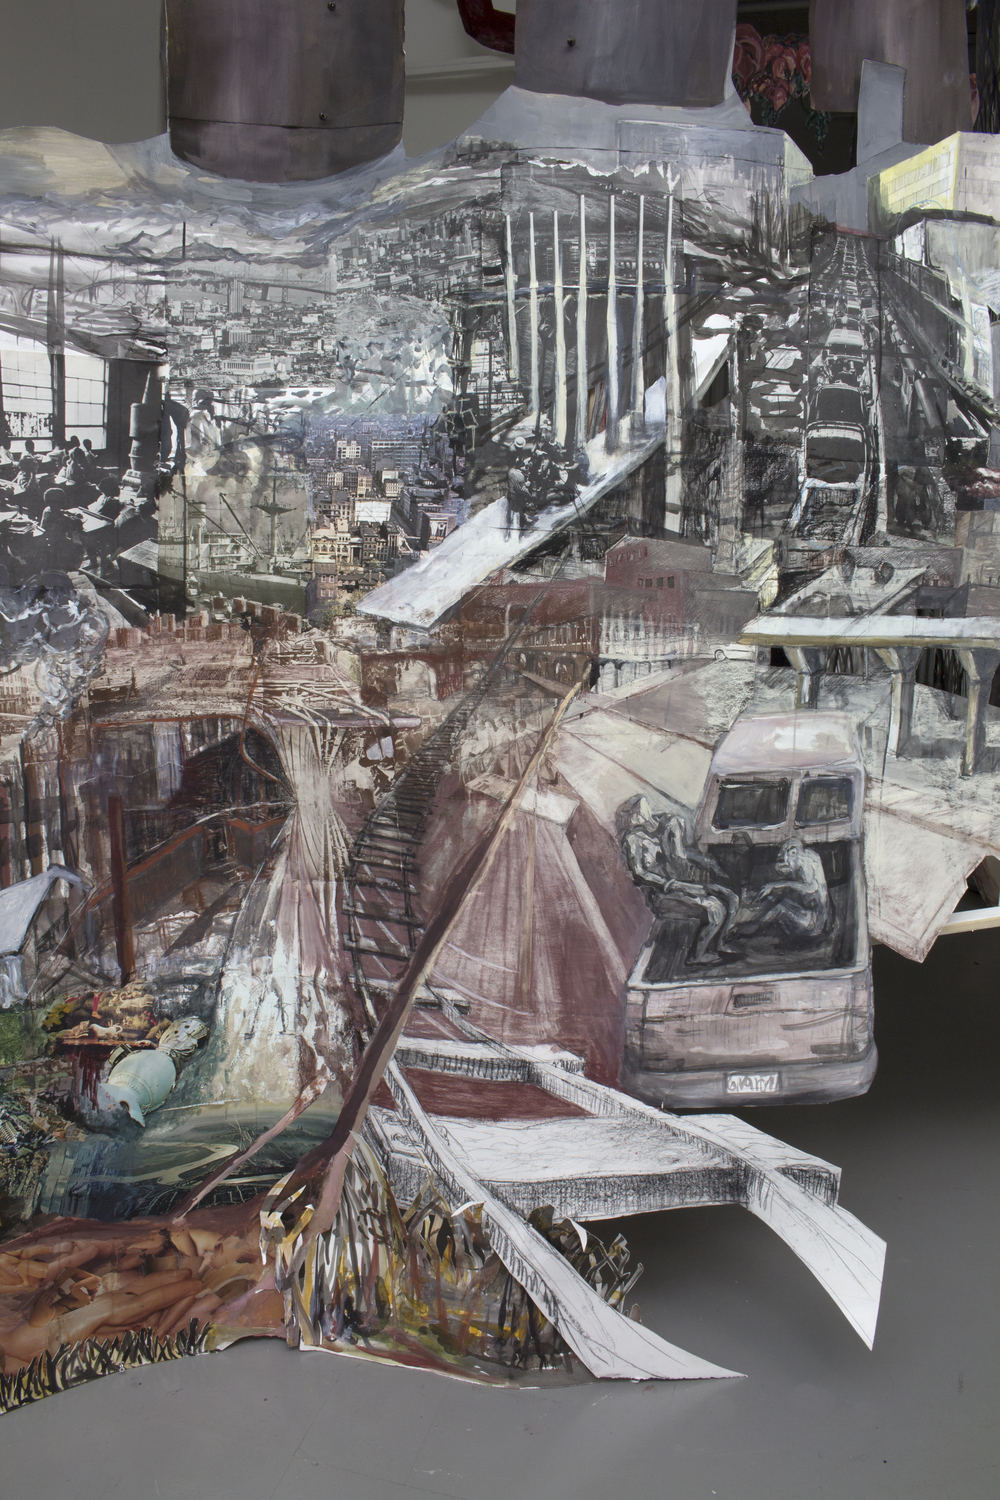 Collective history gets swallowed by leviathan dreamscapes